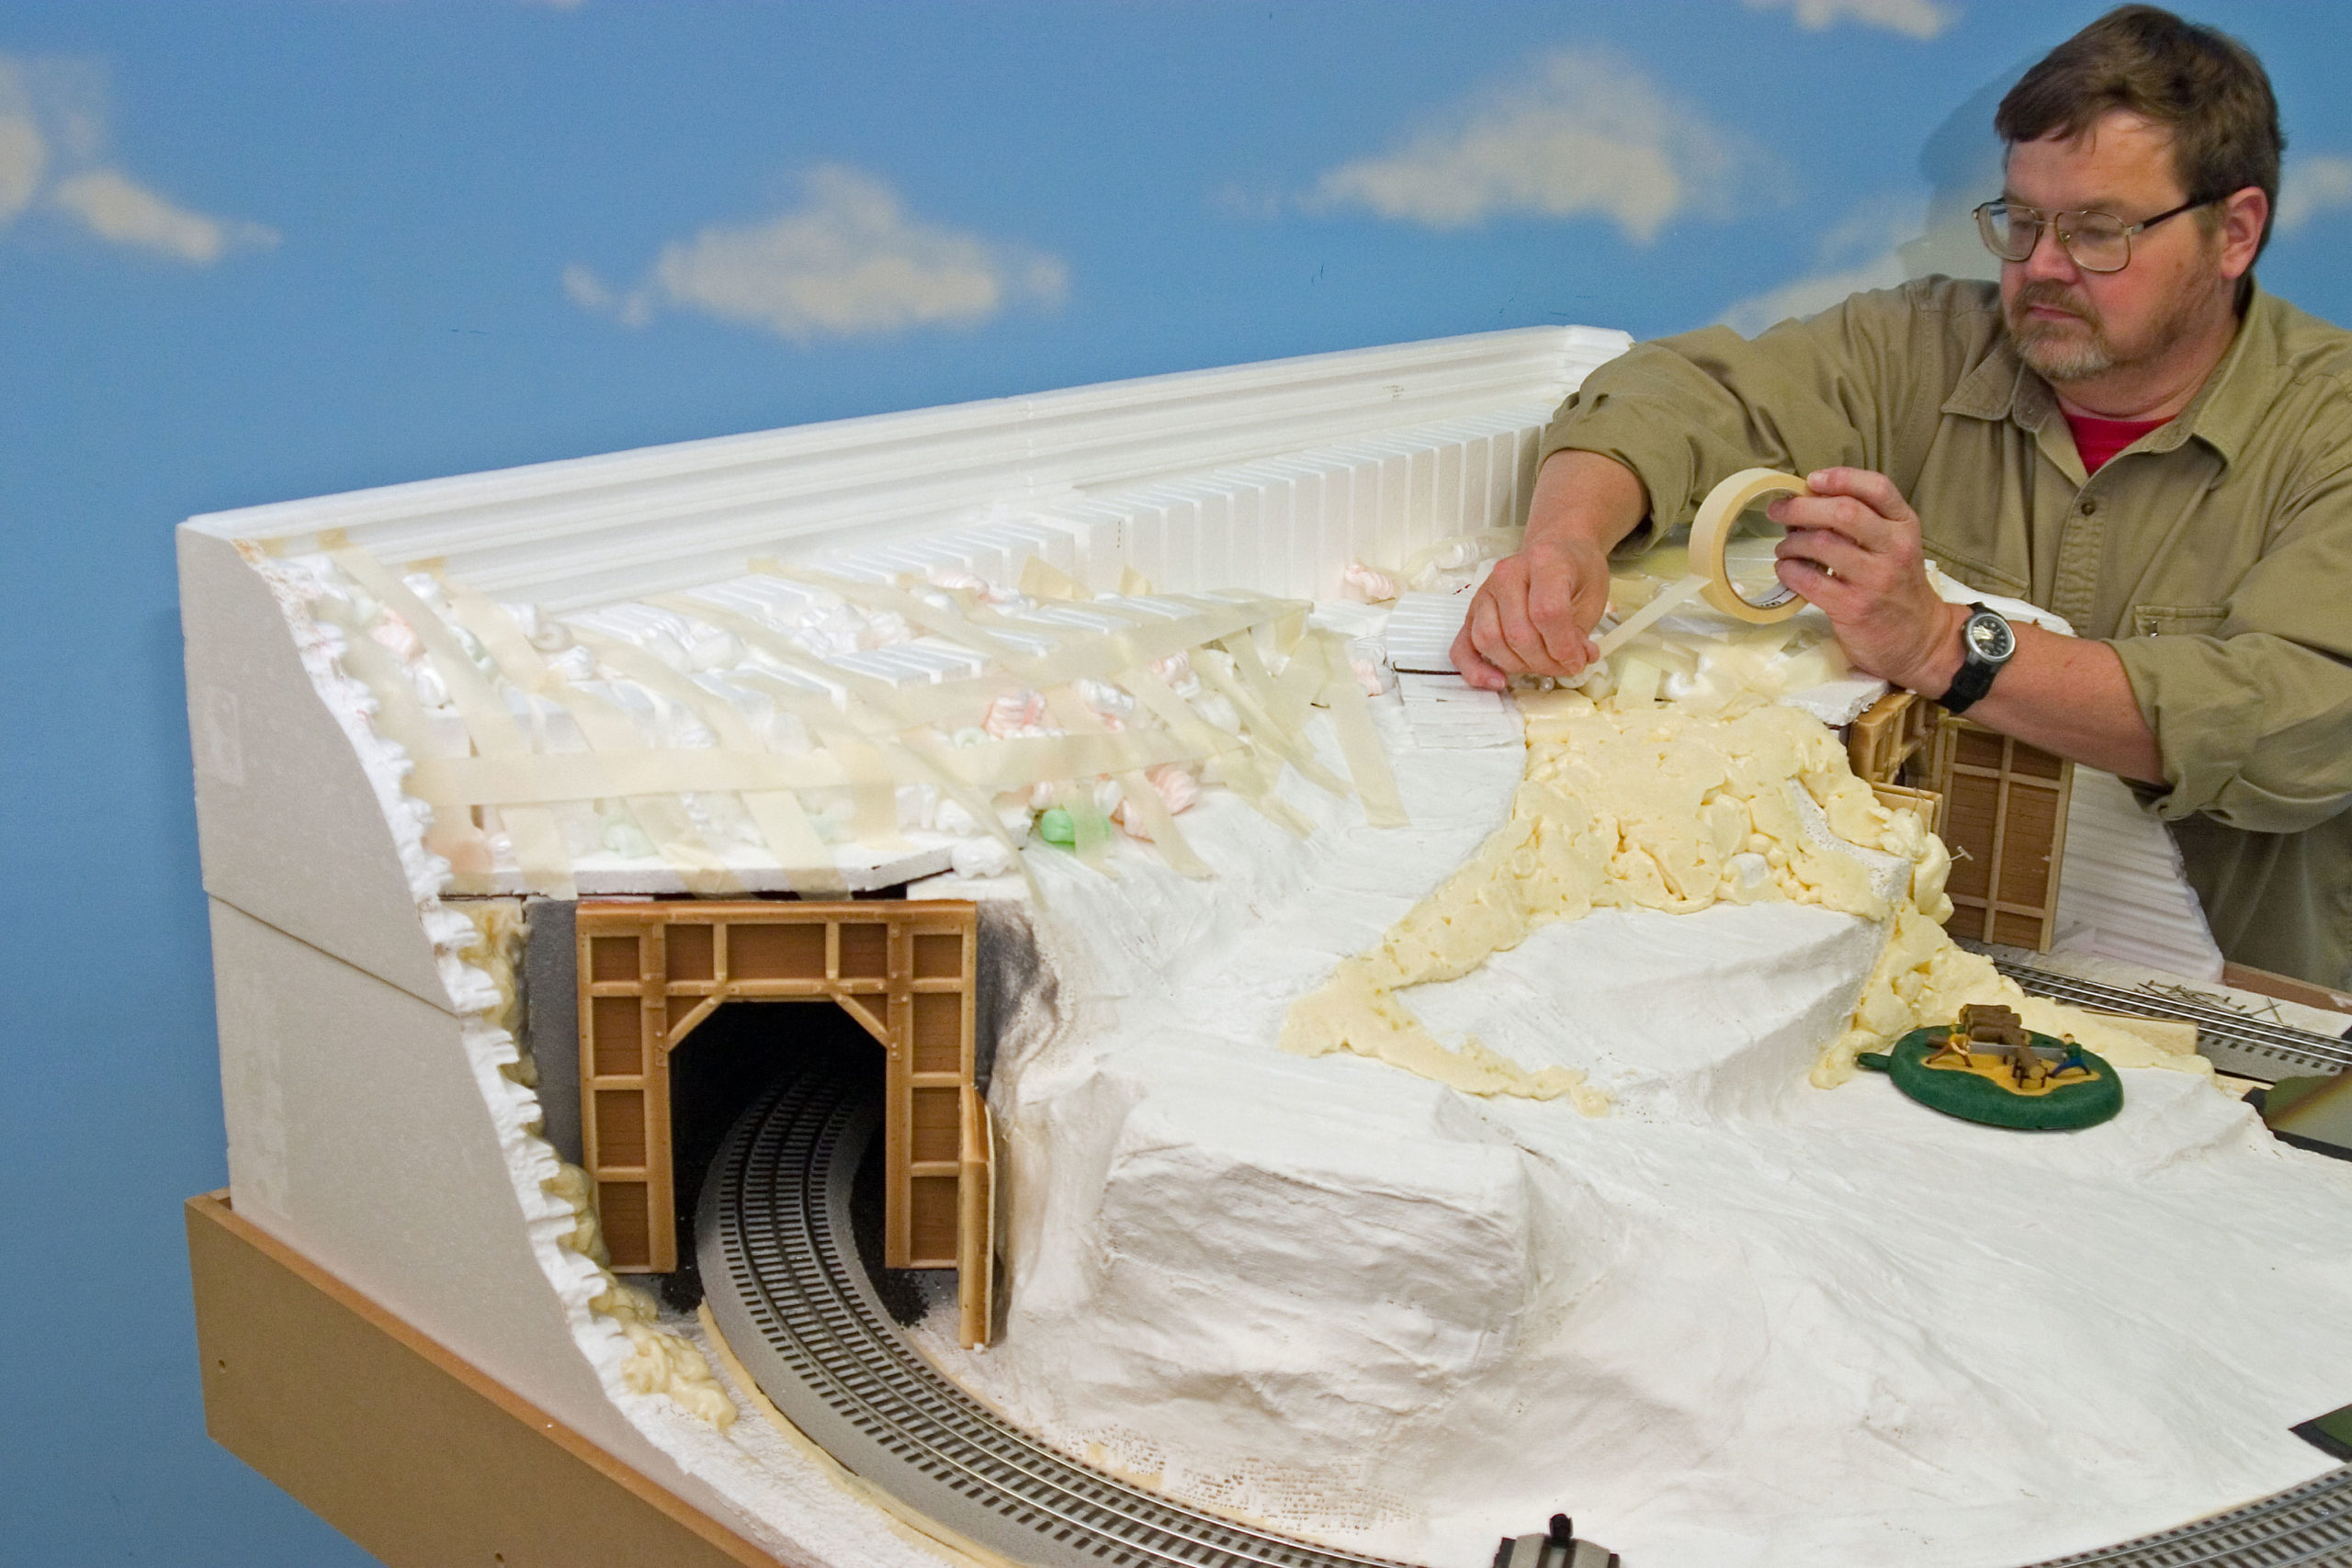 Man working with of foam packing peanuts, expanding foam sealant and profile boards to create a model mountain on a railroad layout.